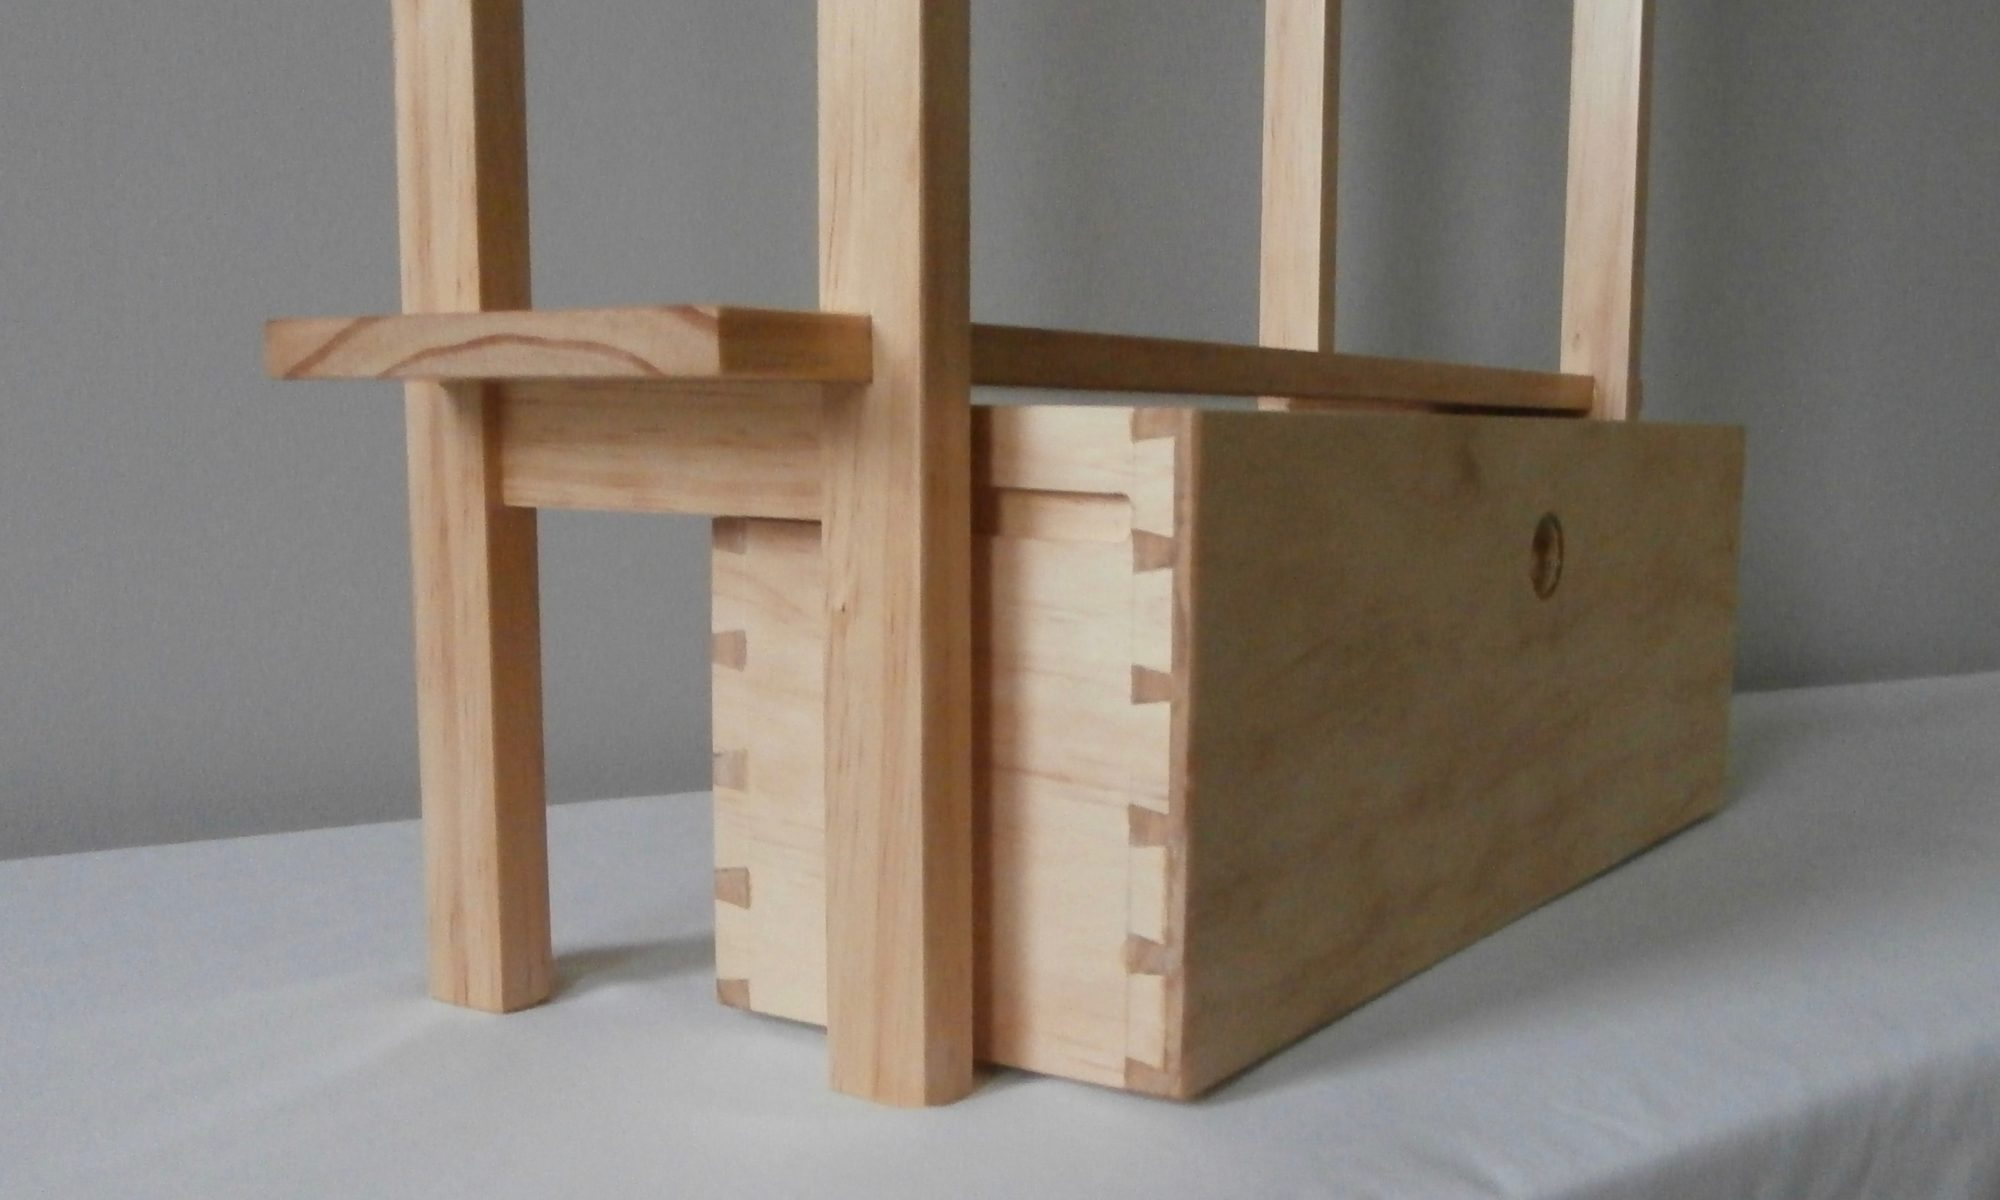 Furniture by Frances